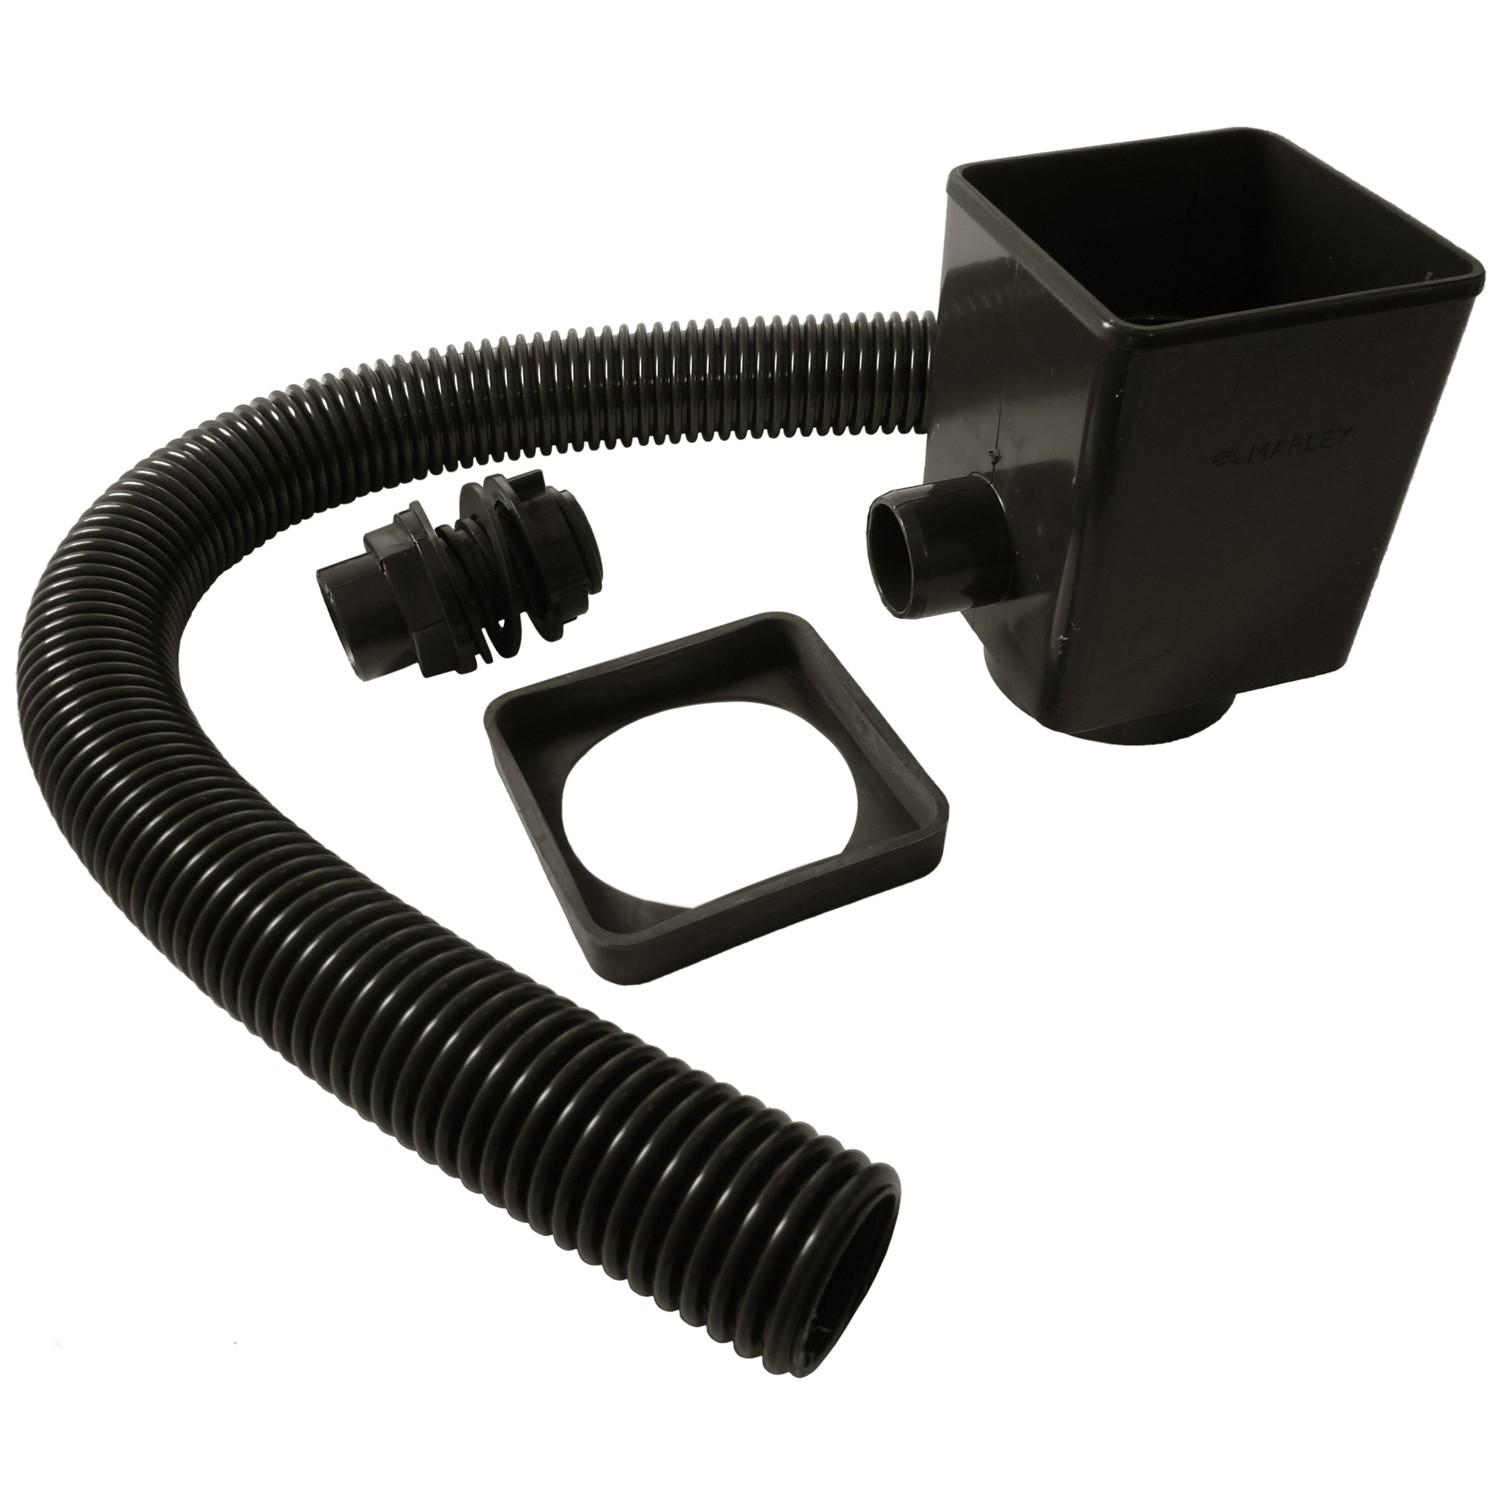 Marley Down Pipe Rain Water Diverter and Seal - Black